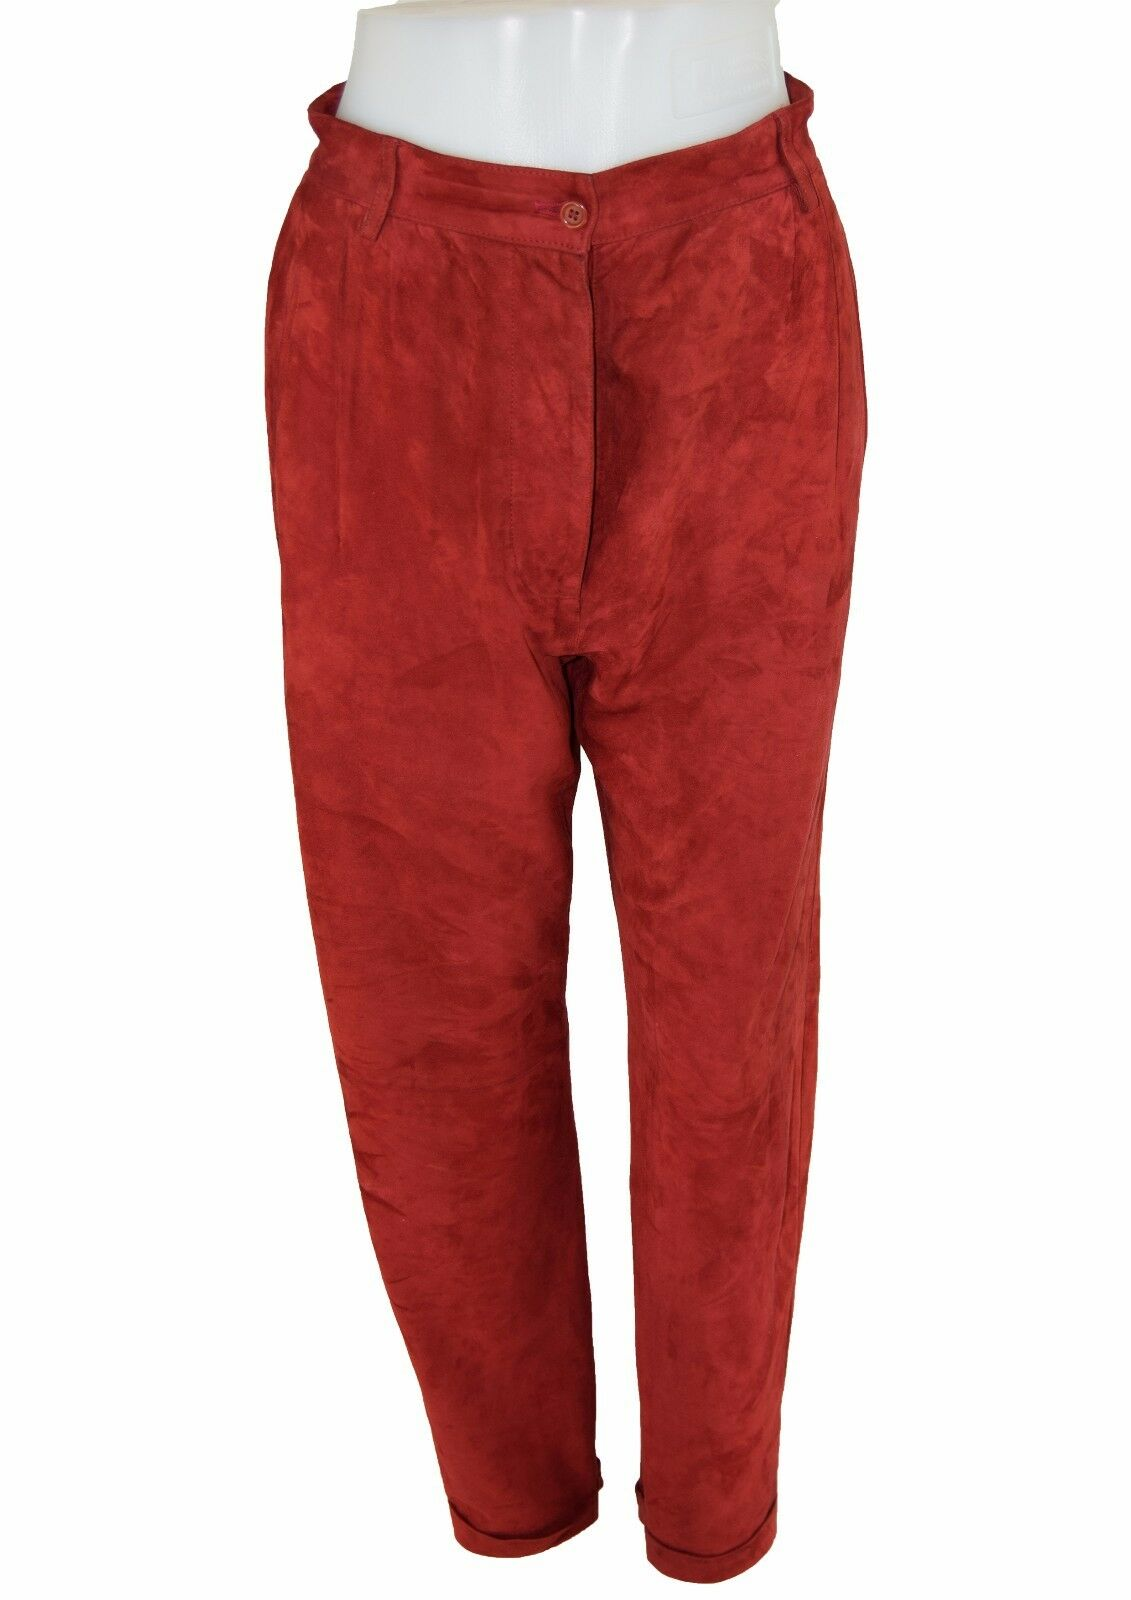 EMPORIO ARMANI rot rot rot Suede Trousers UK 14 EU 42 IT 46 0d4c58